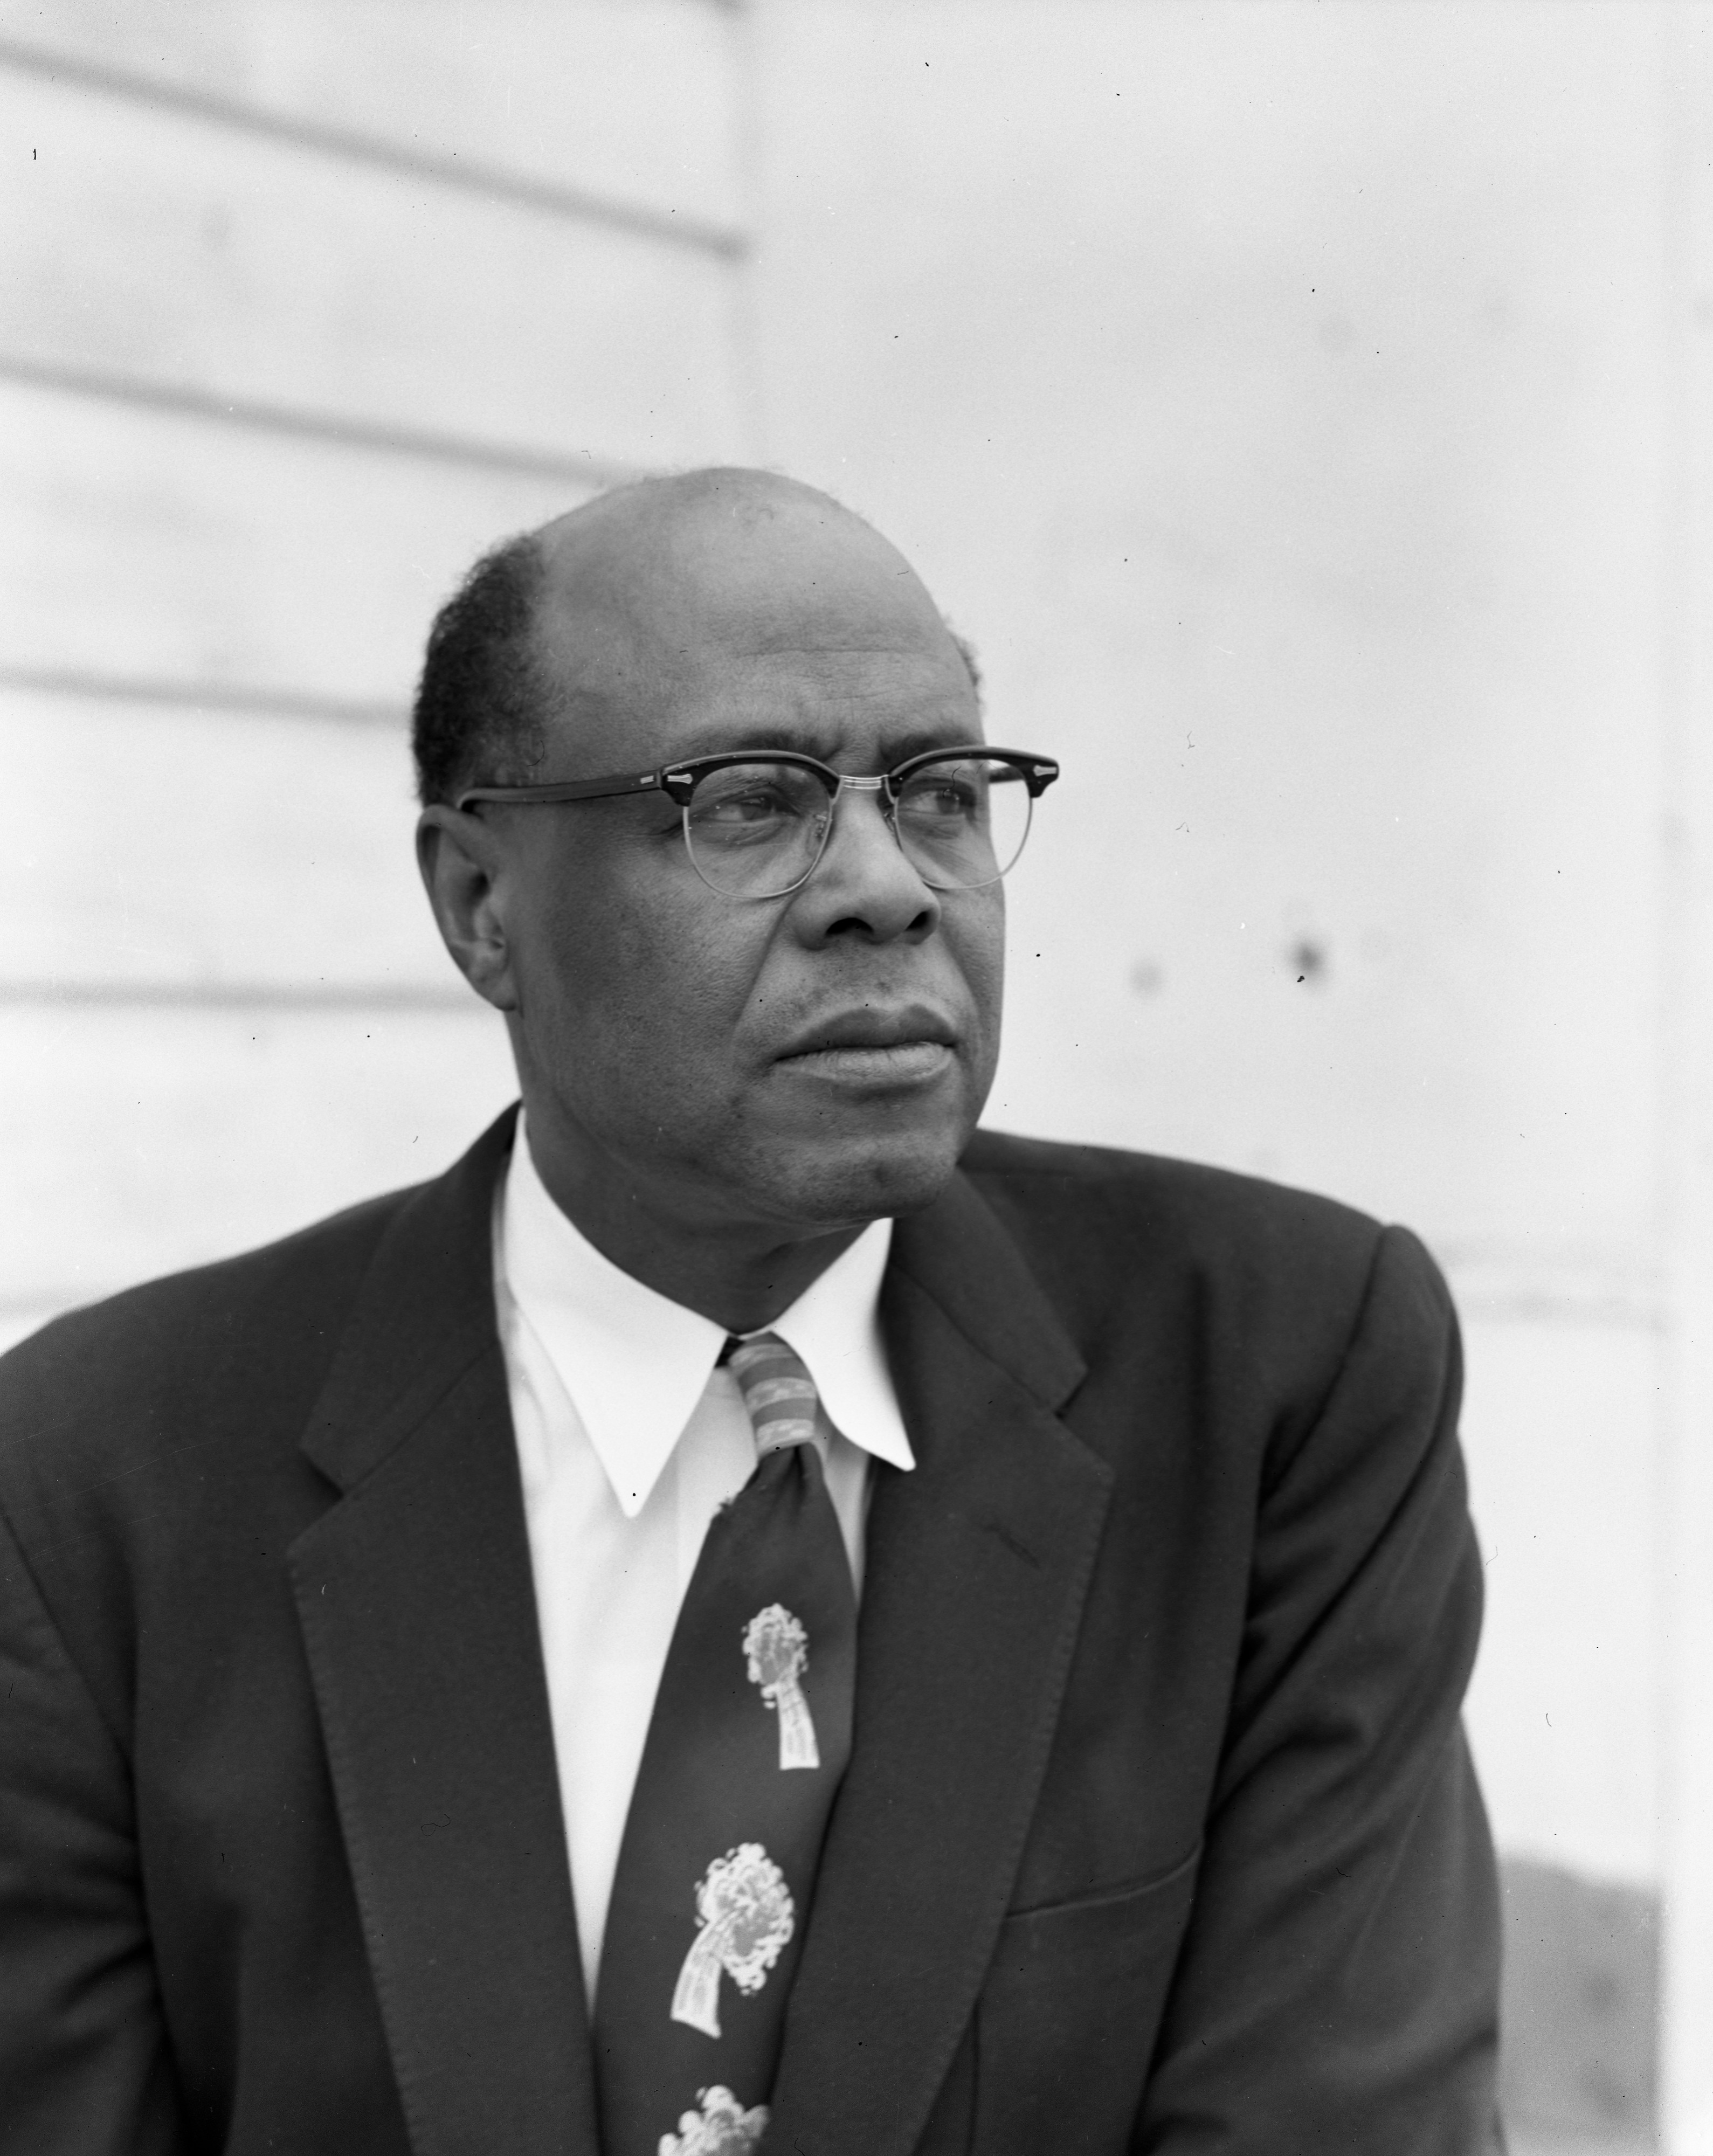 Amos Washington, Ypsilanti City Official, April 1956 image